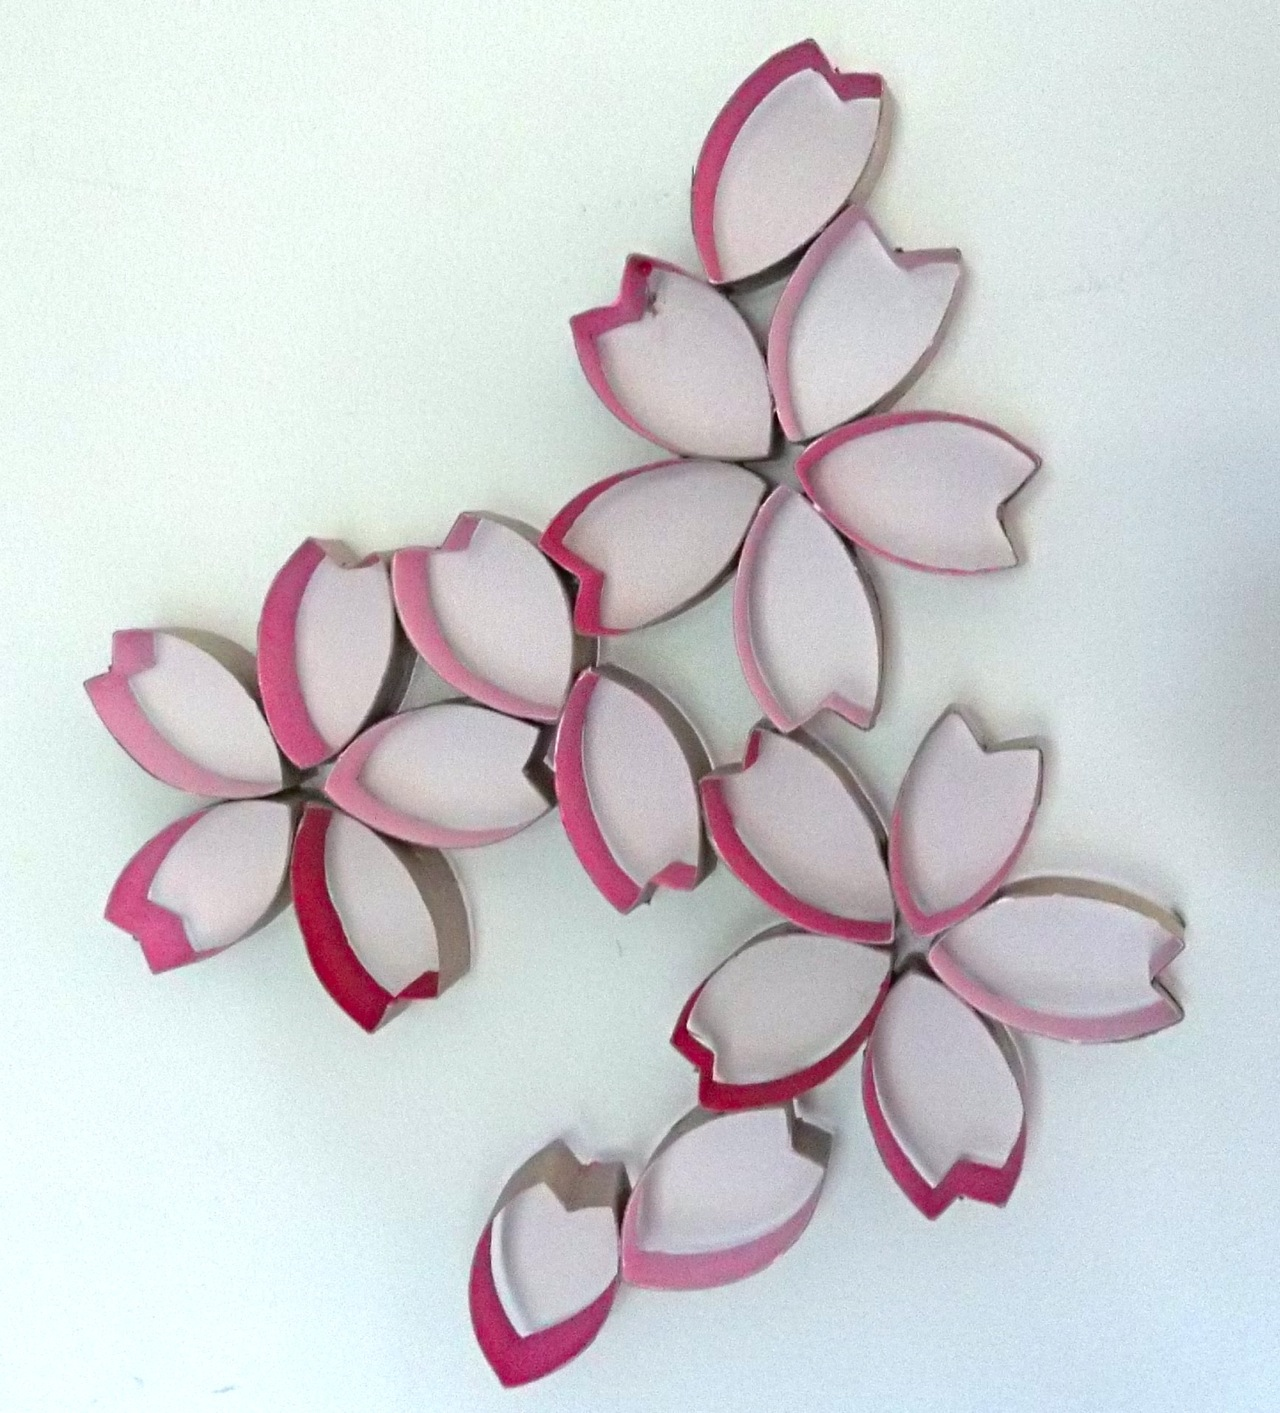 amazing crafts you can make with toilet paper rolls huffpost life